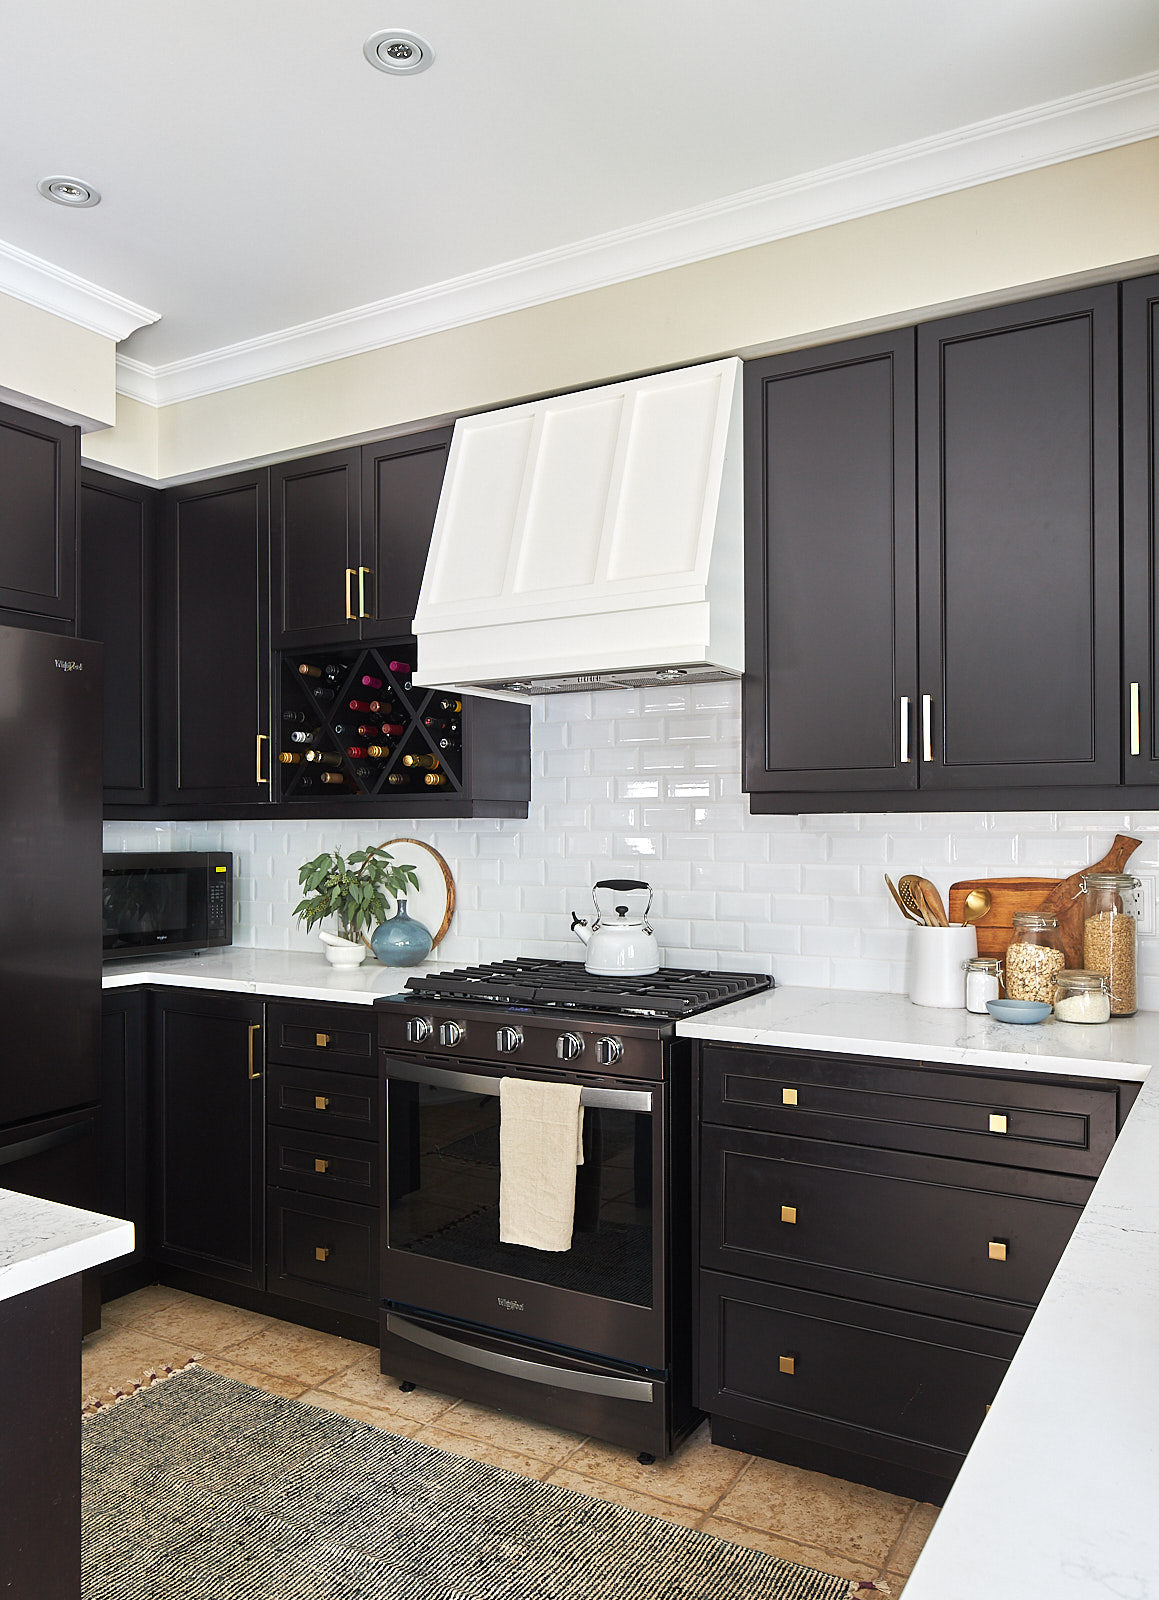 black stainless appliances whirlpool